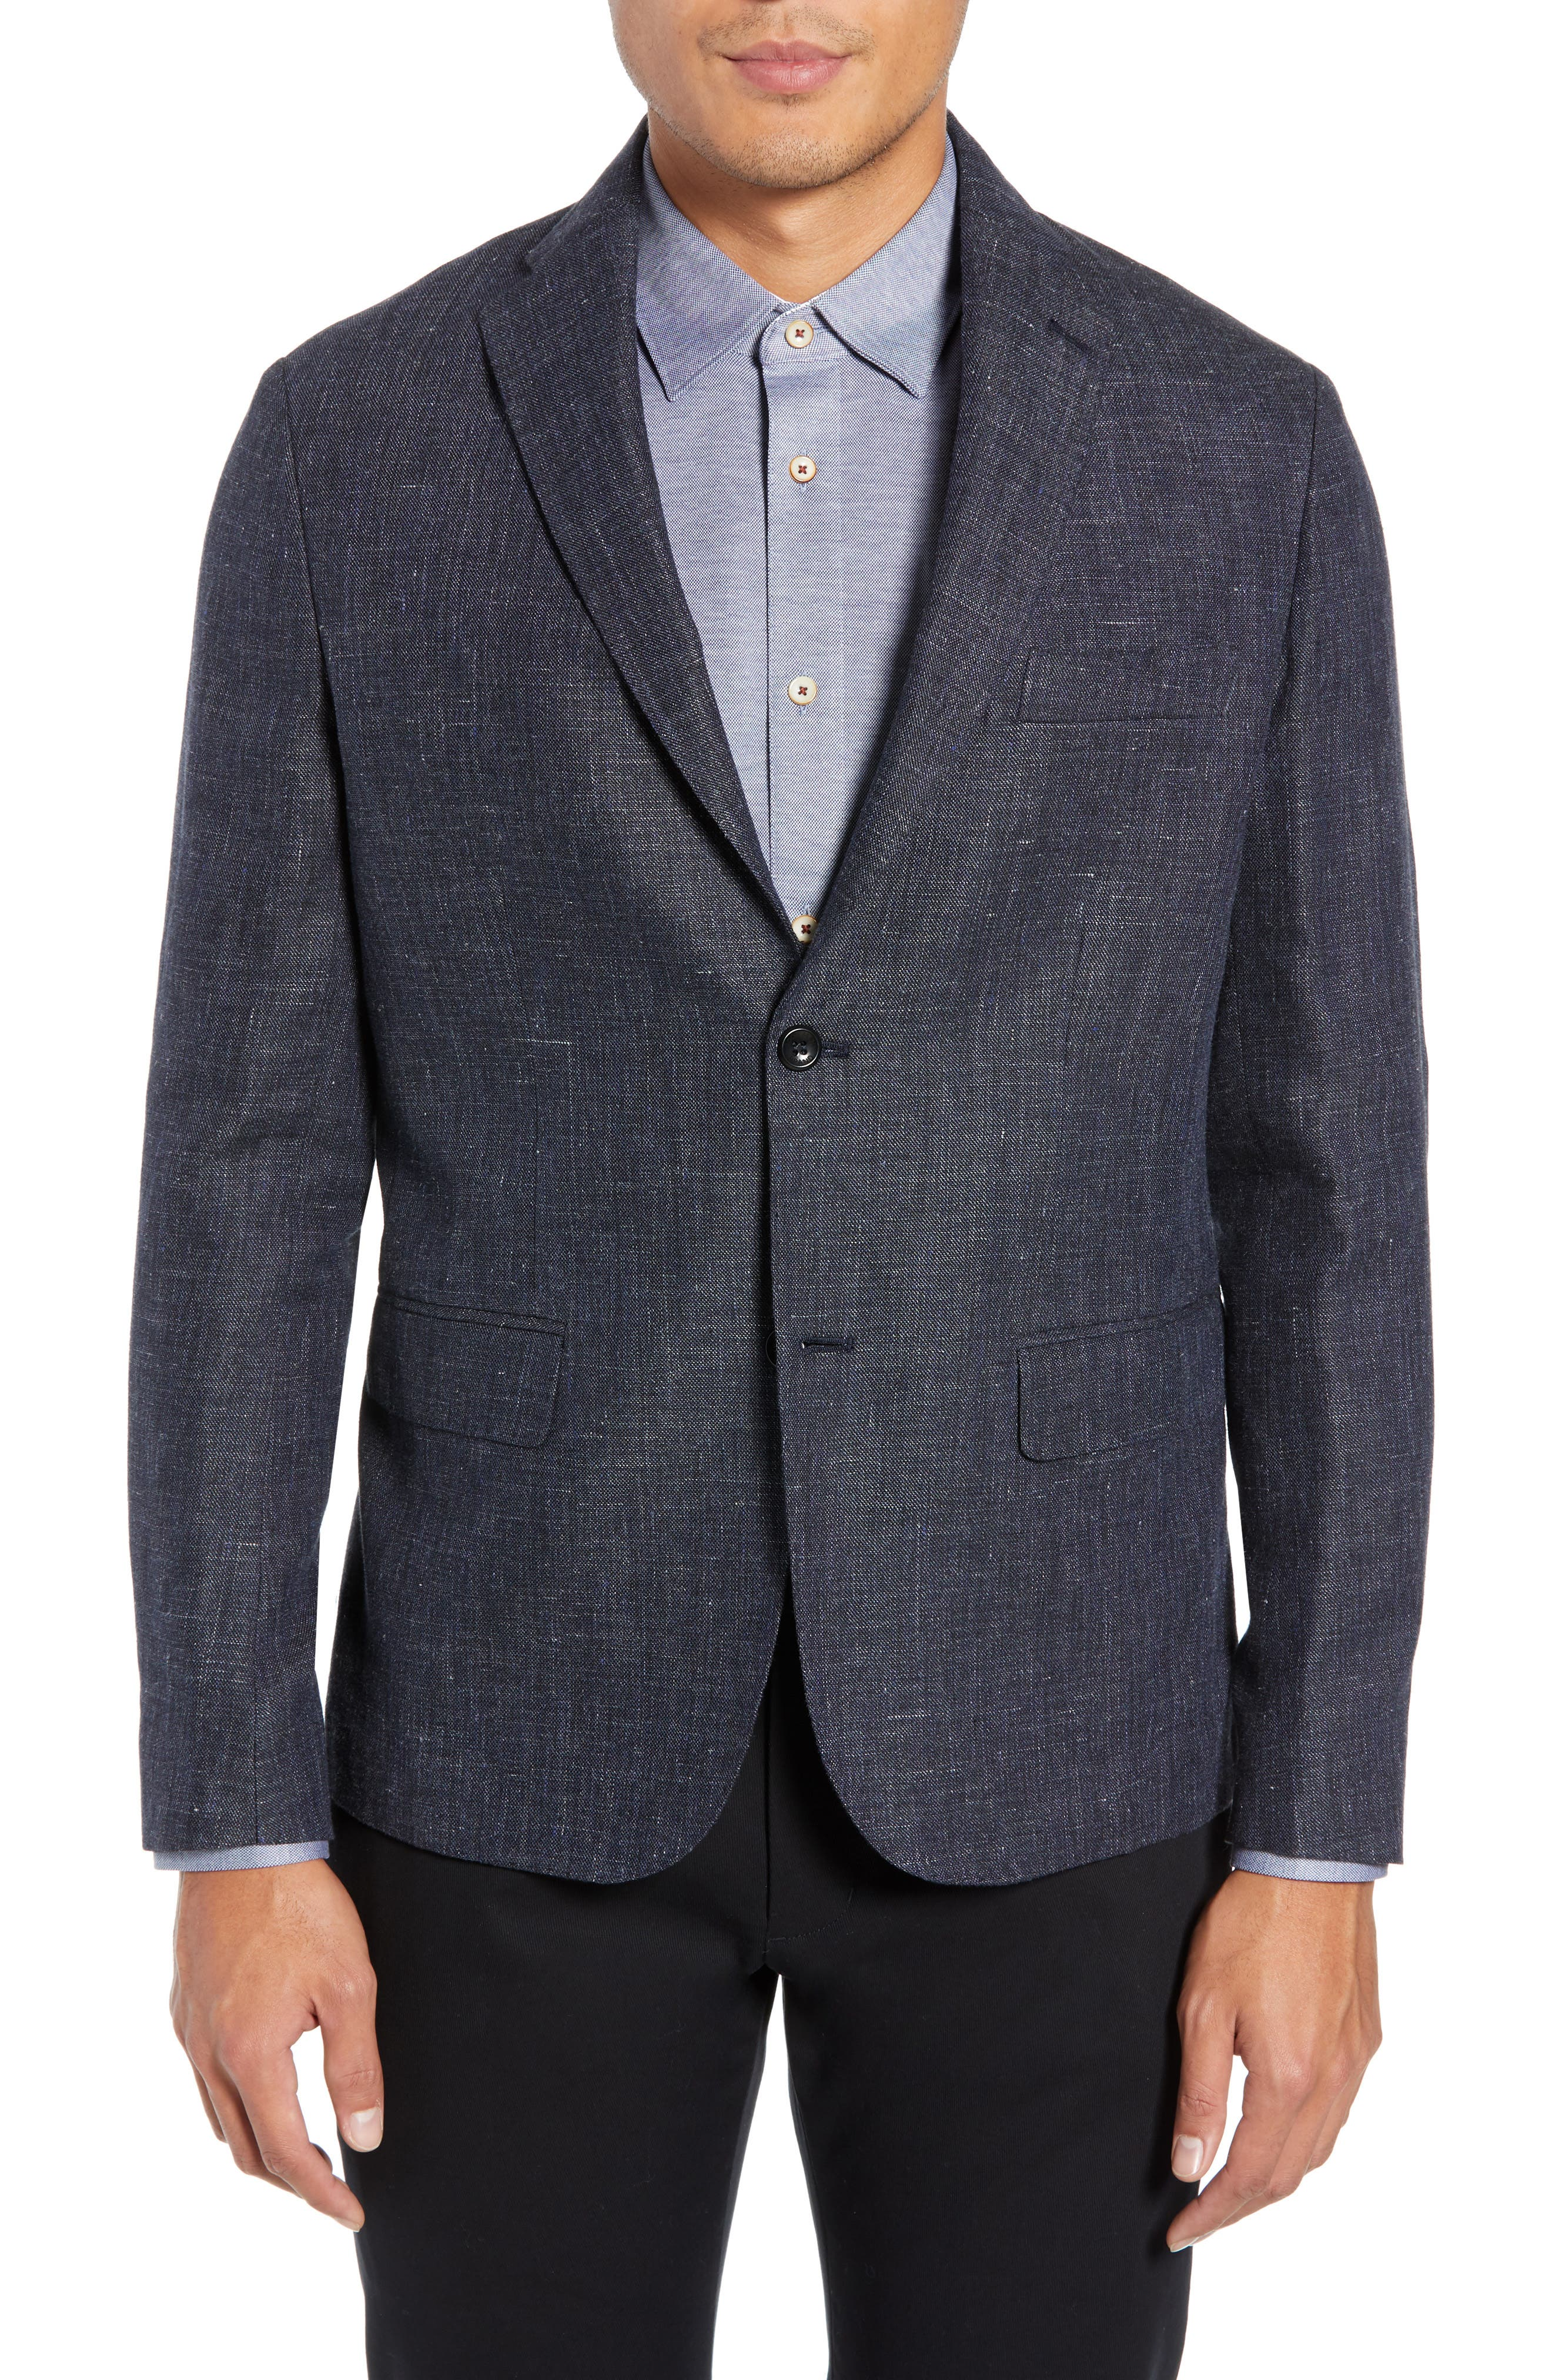 Slim Fit Unconstructed Wool & Linen Blazer,                             Main thumbnail 1, color,                             410